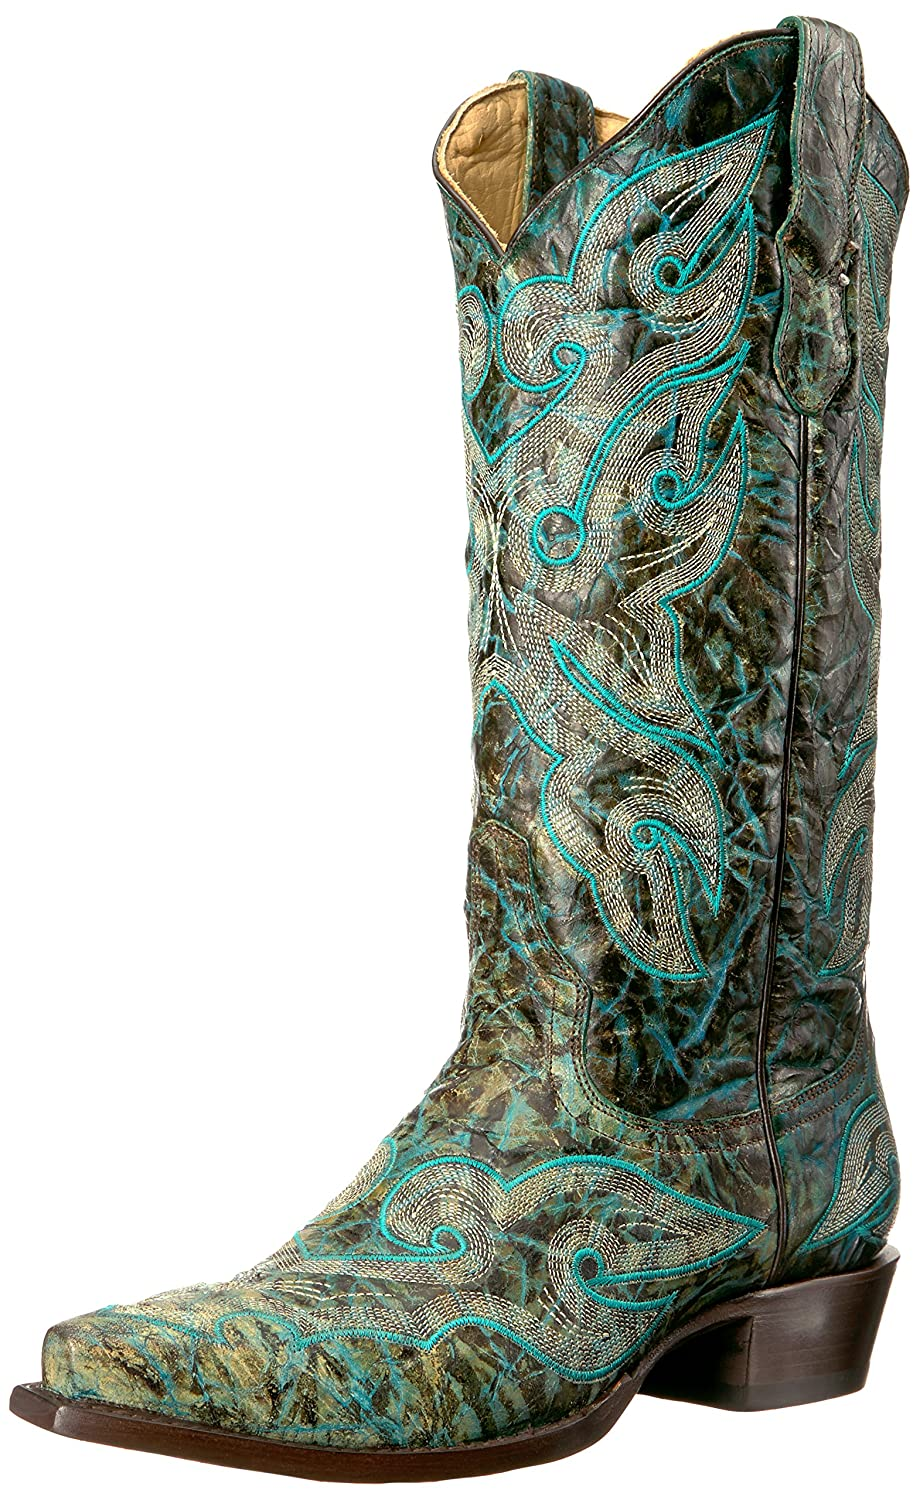 Stetson Women's Vintage Work Boot B00U9Y68X0 5.5 D US|Green